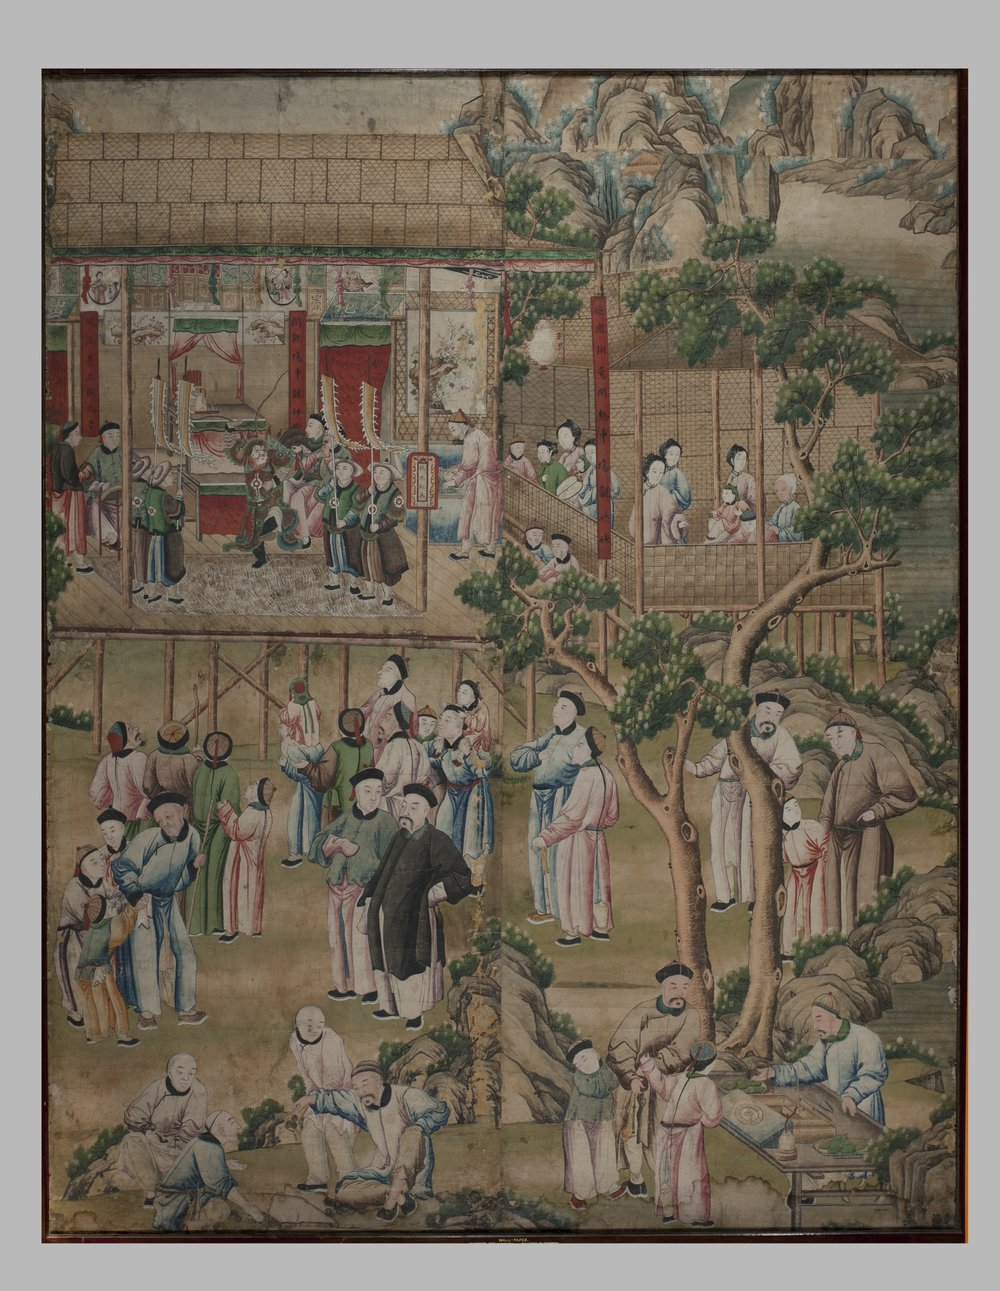 Detail, Chinese wallpaper, made in Guangzhou, China, ©Victoria and Albert Museum, E.3017-1921